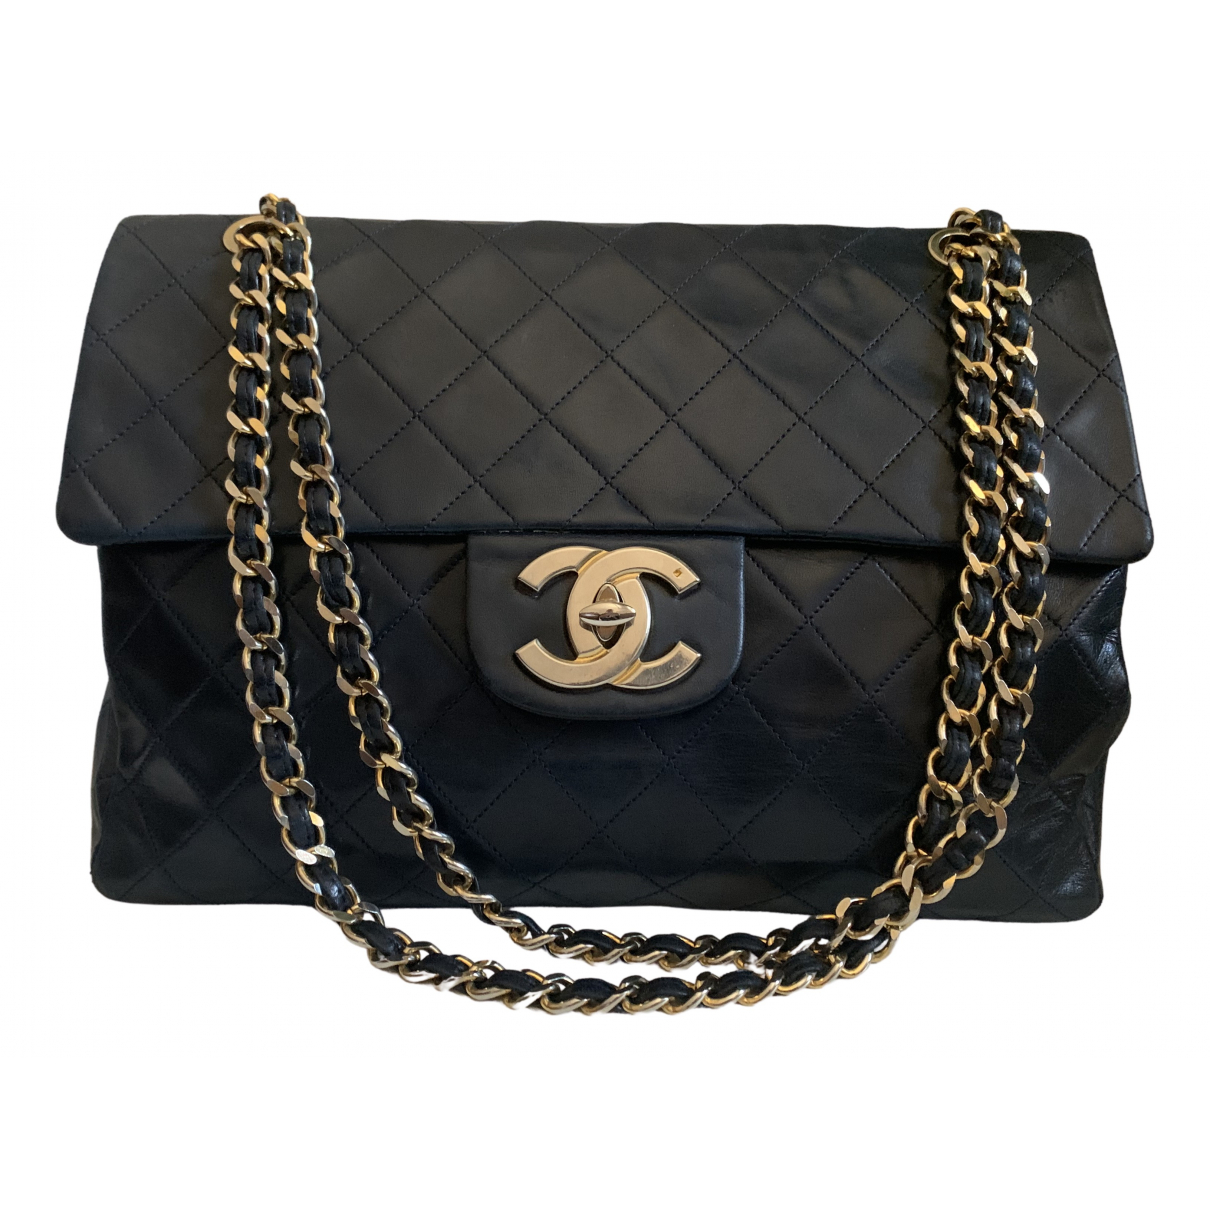 Chanel Timeless/Classique Blue Leather handbag for Women N